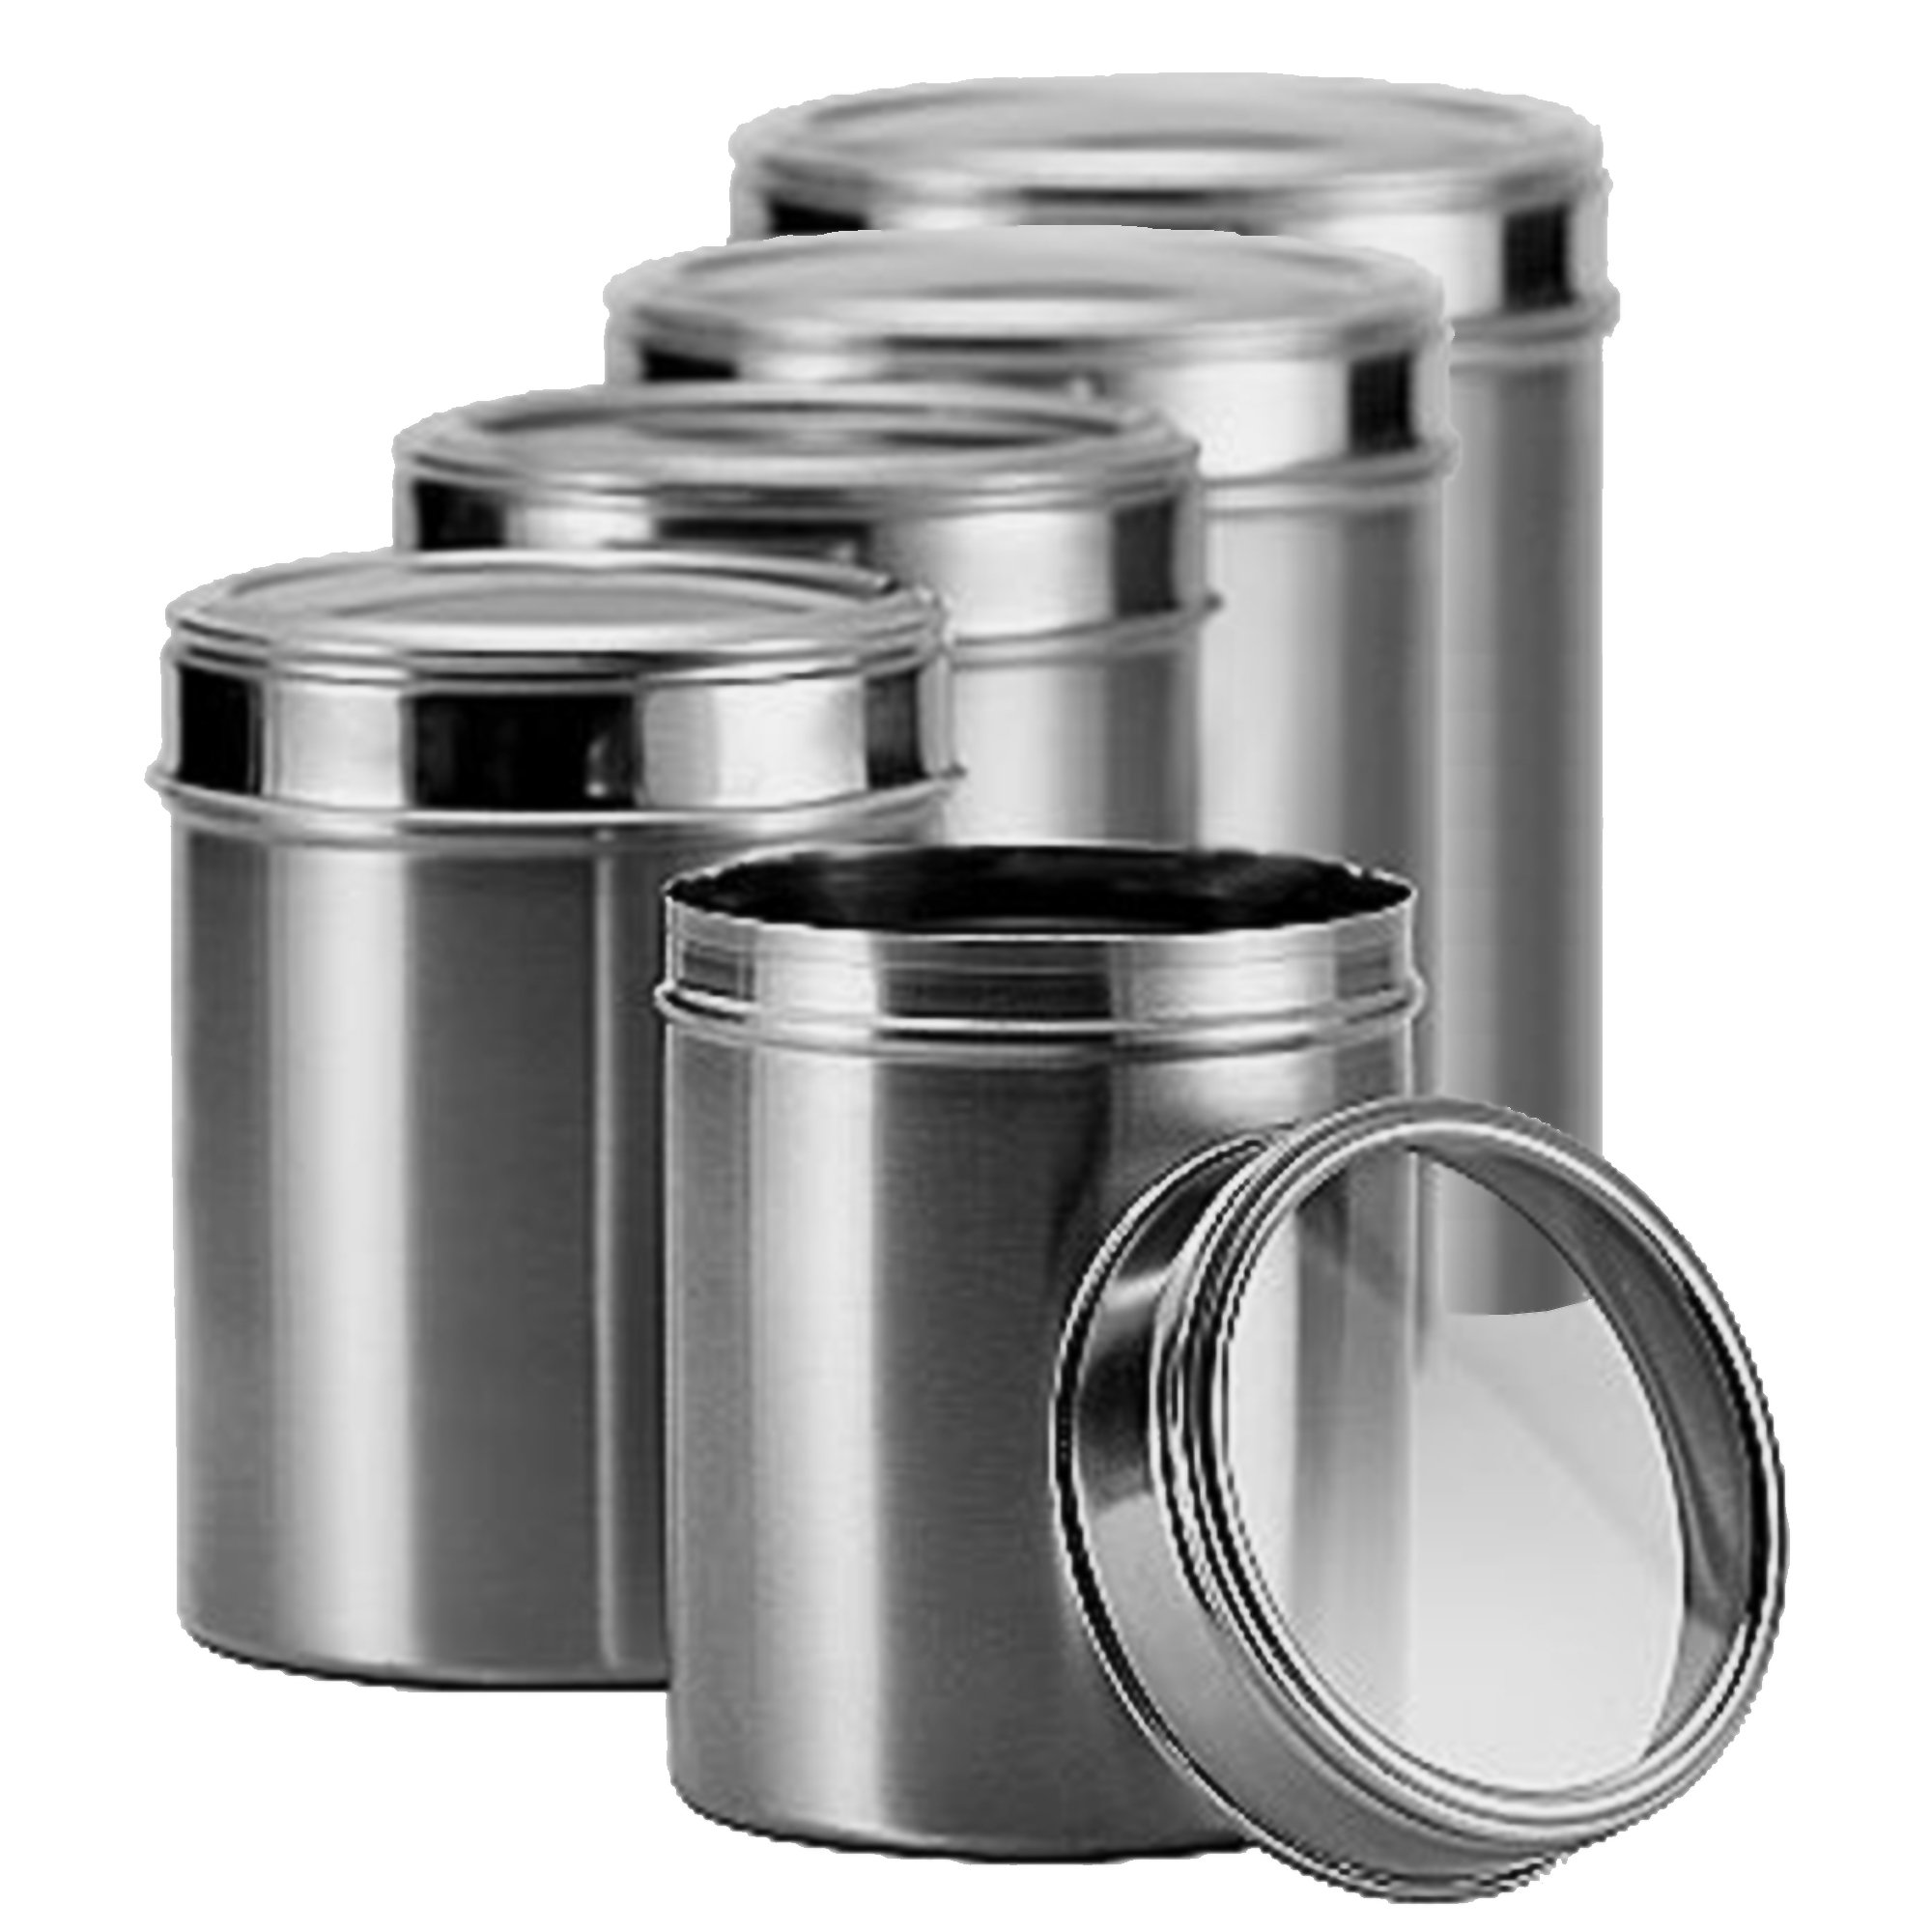 stainless steel canister sets kitchen matbah stainless steel 5 piece canister set with clear lid ebay 2439